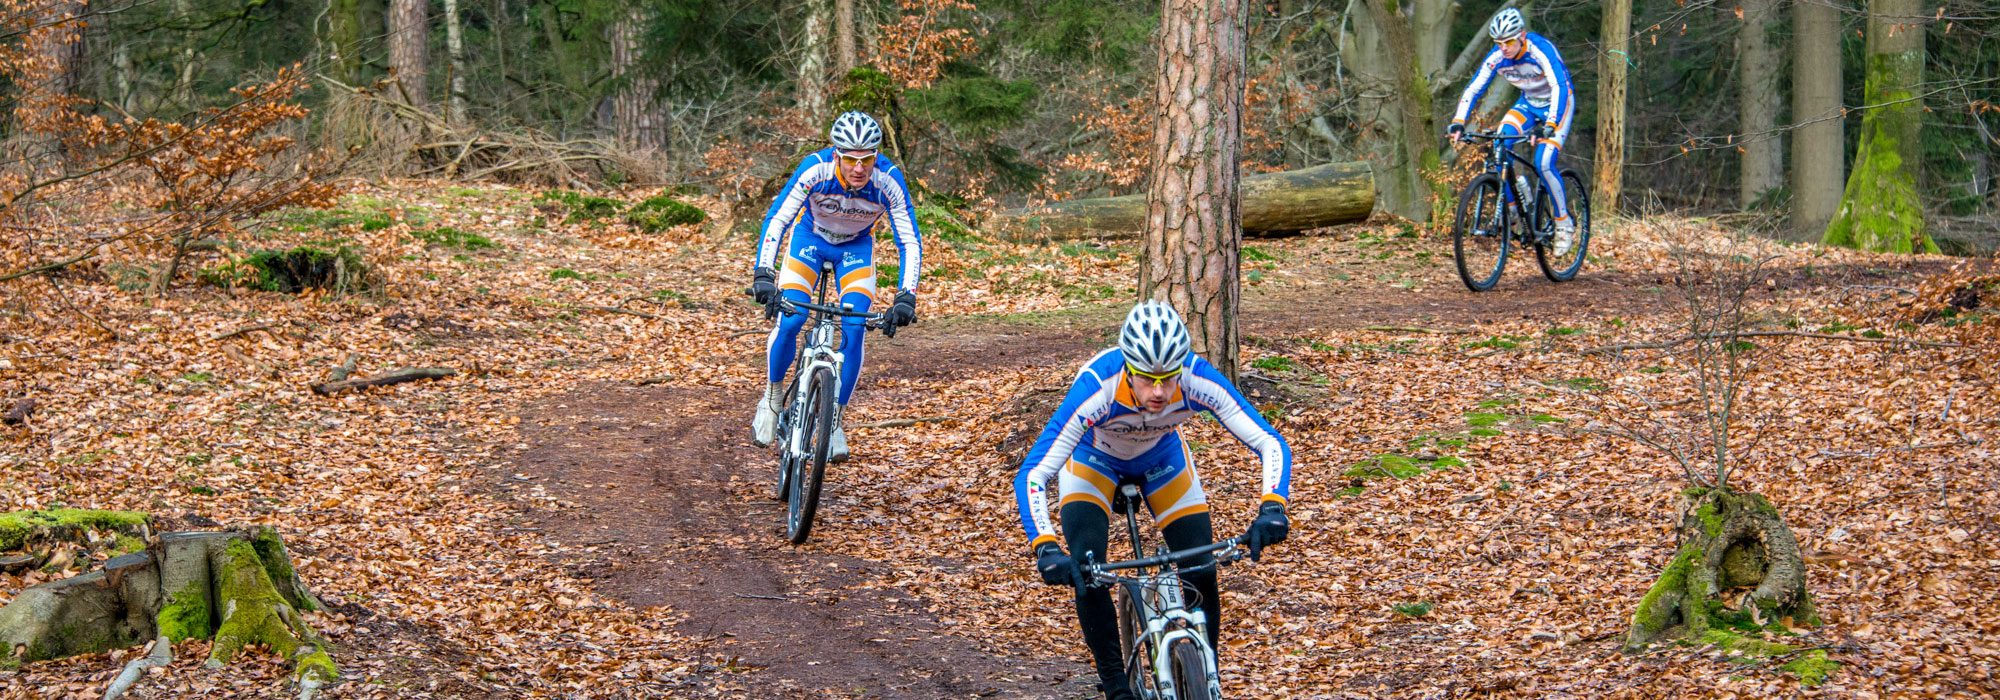 mtbclinic.nl mountainbike clinics xc race